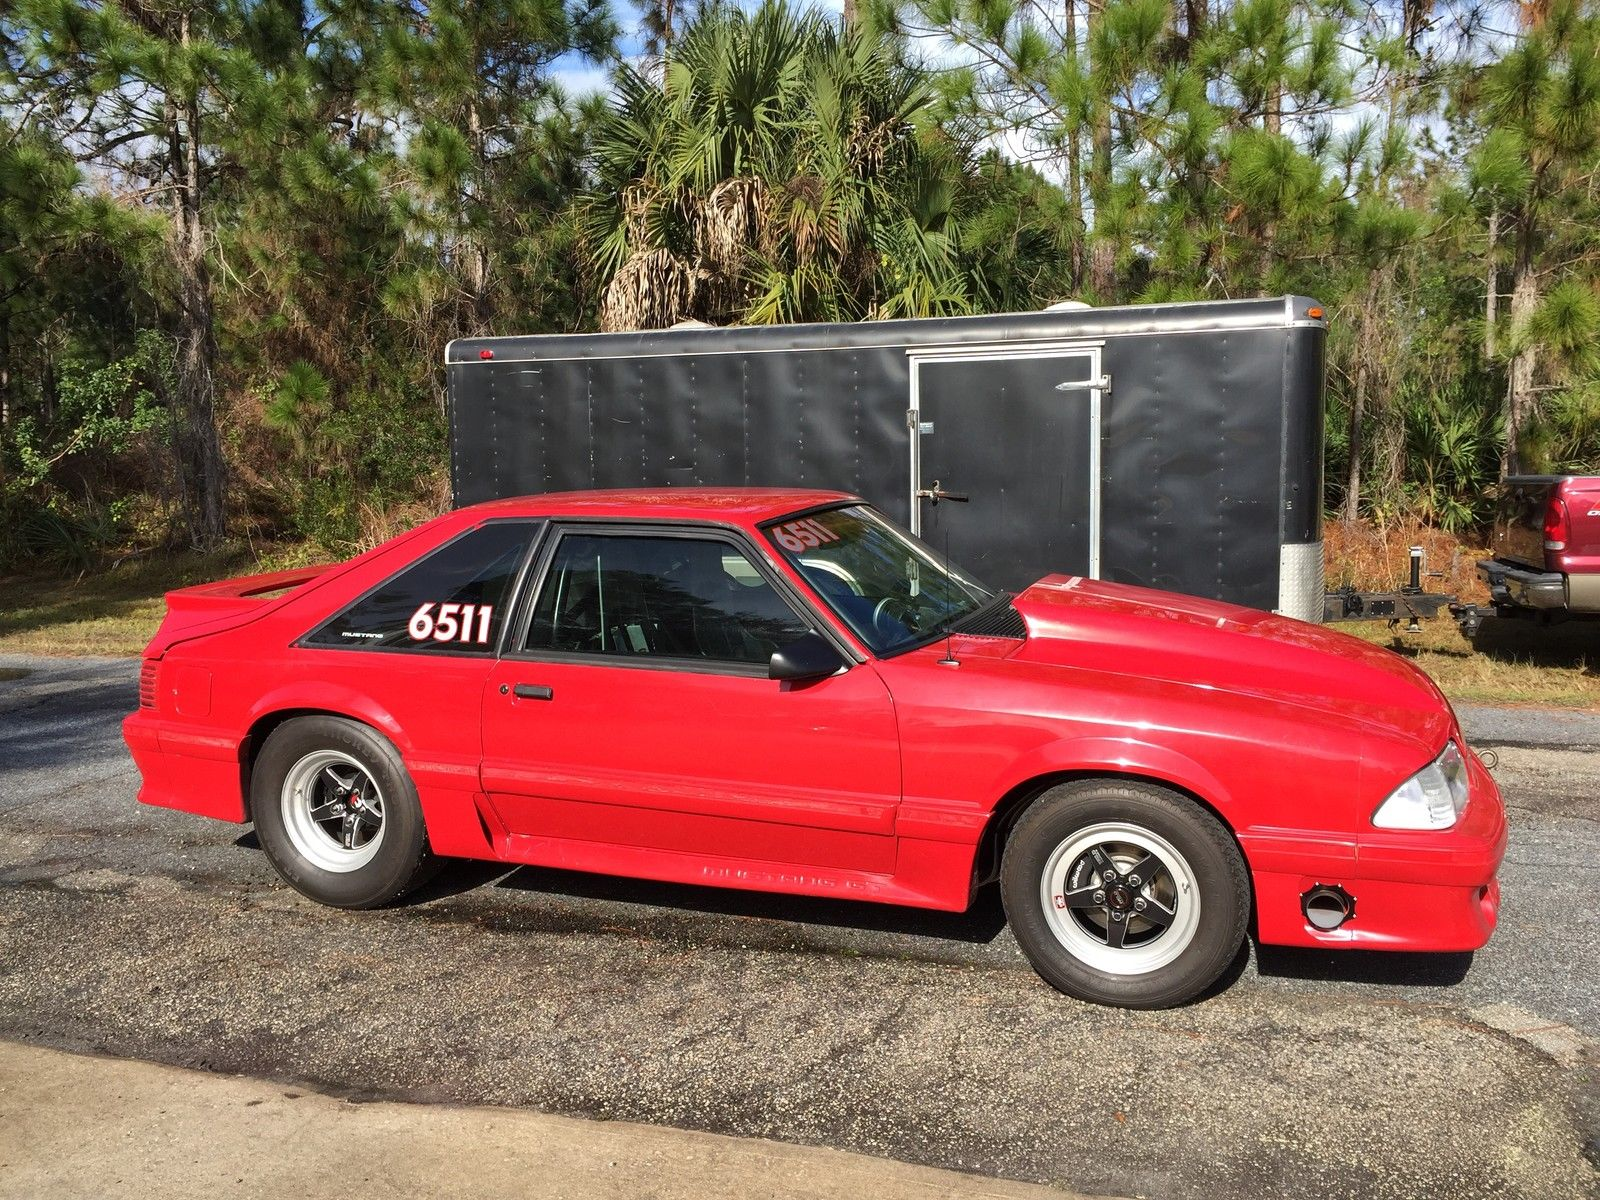 90 ford mustang gt drag race car and trailer combo for sale in palm bay florida united states. Black Bedroom Furniture Sets. Home Design Ideas